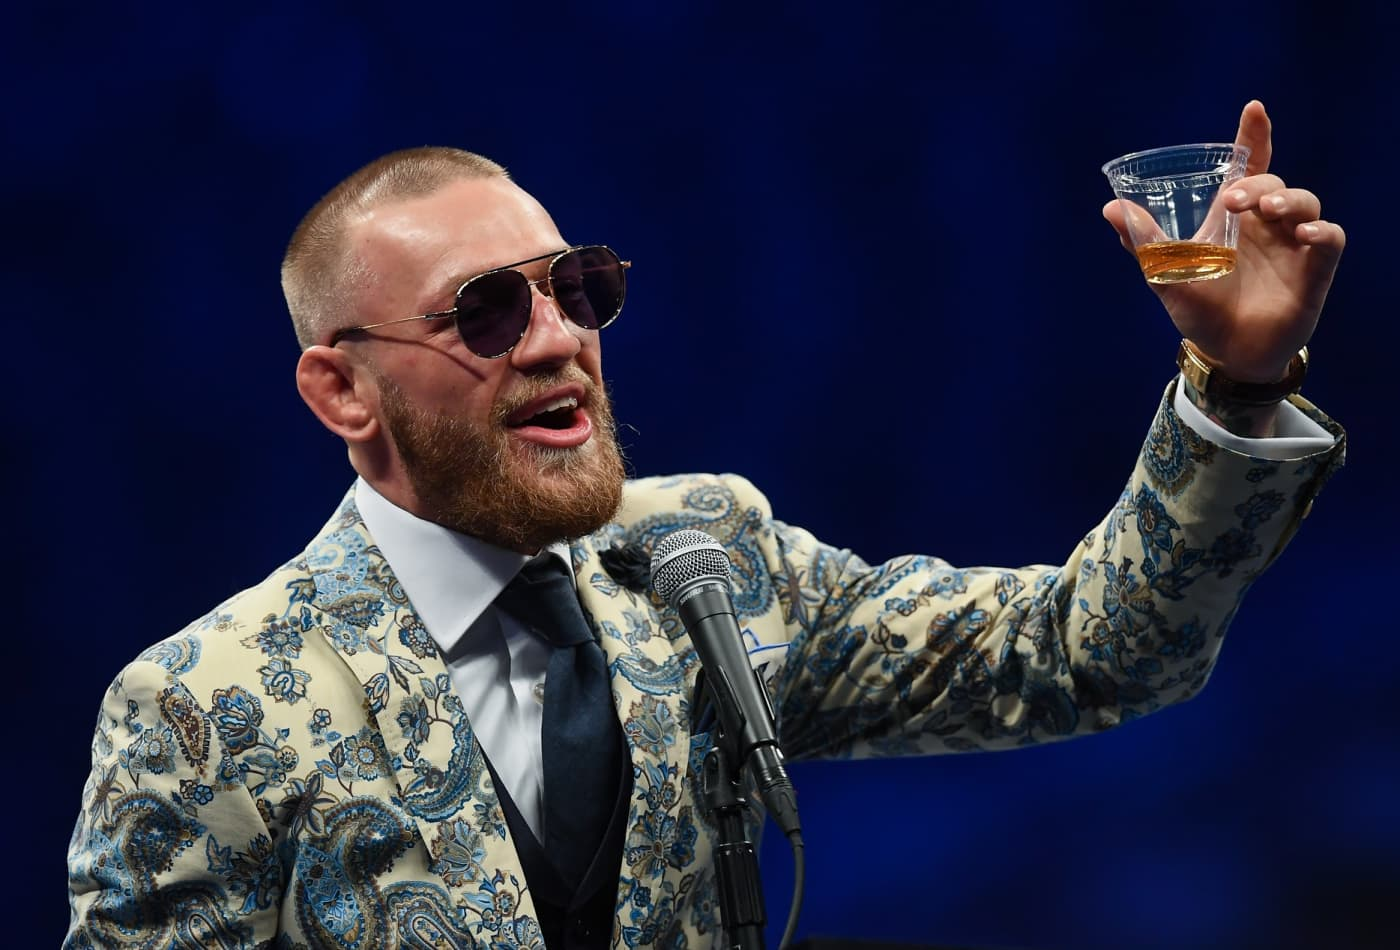 How Mma Fighter Conor Mcgregor Went From Welfare To Millionaire